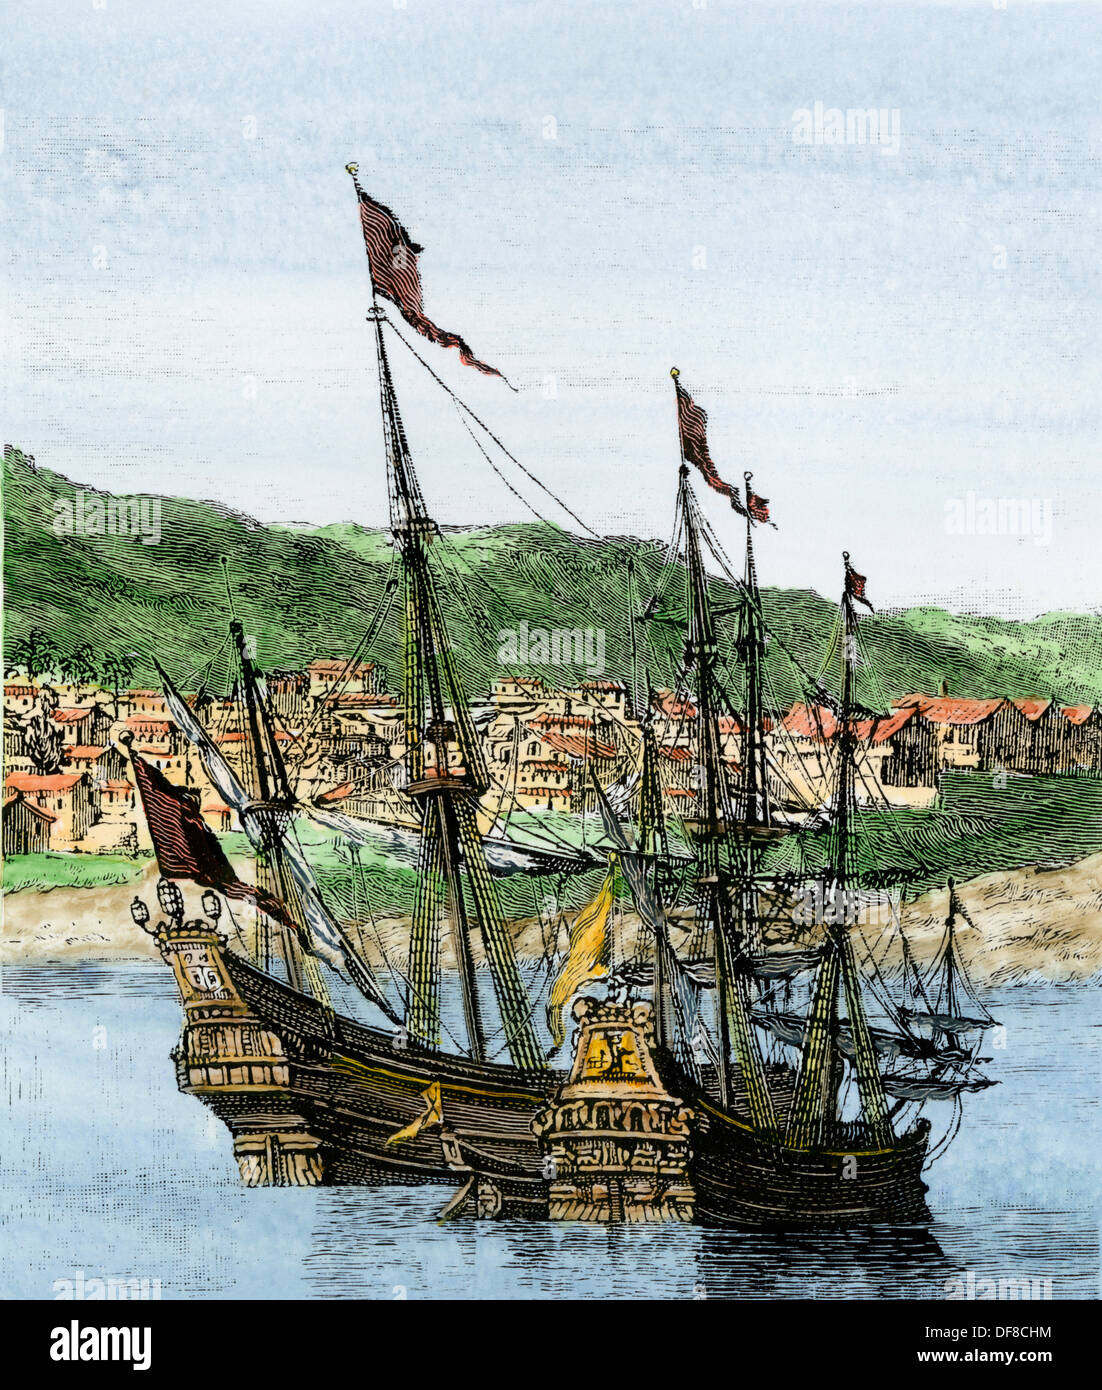 Spanish ships in a colonial port. Hand-colored woodcut ...